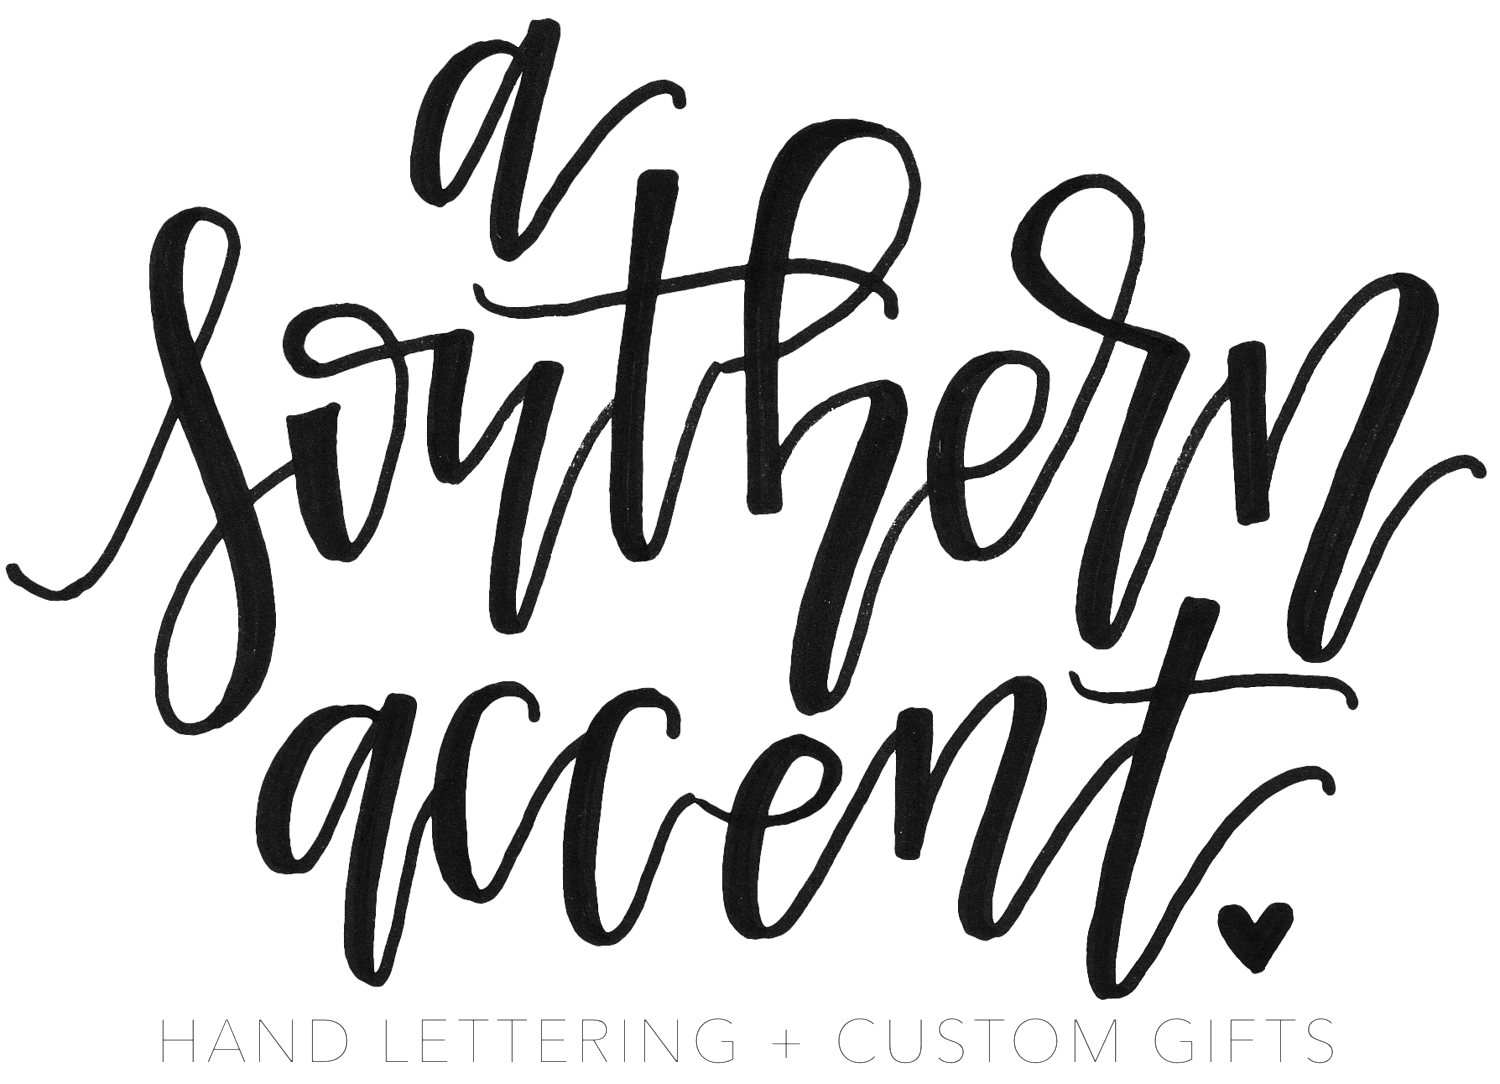 Drawing instrument lettering. A southern accent